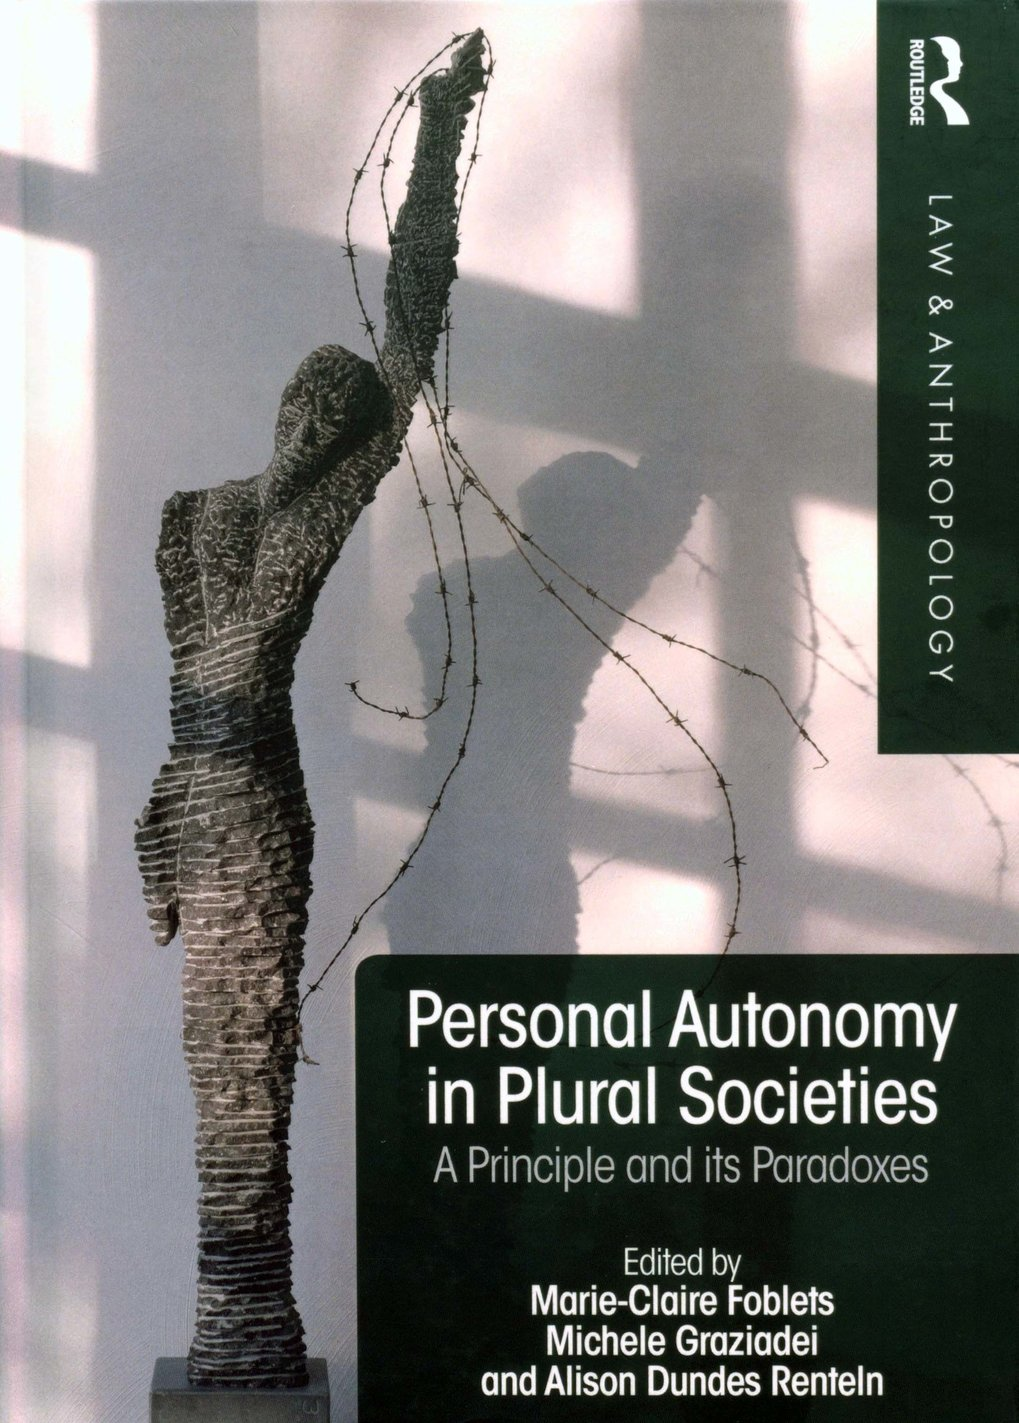 Personal autonomy in plural societies. A principle and its paradoxes